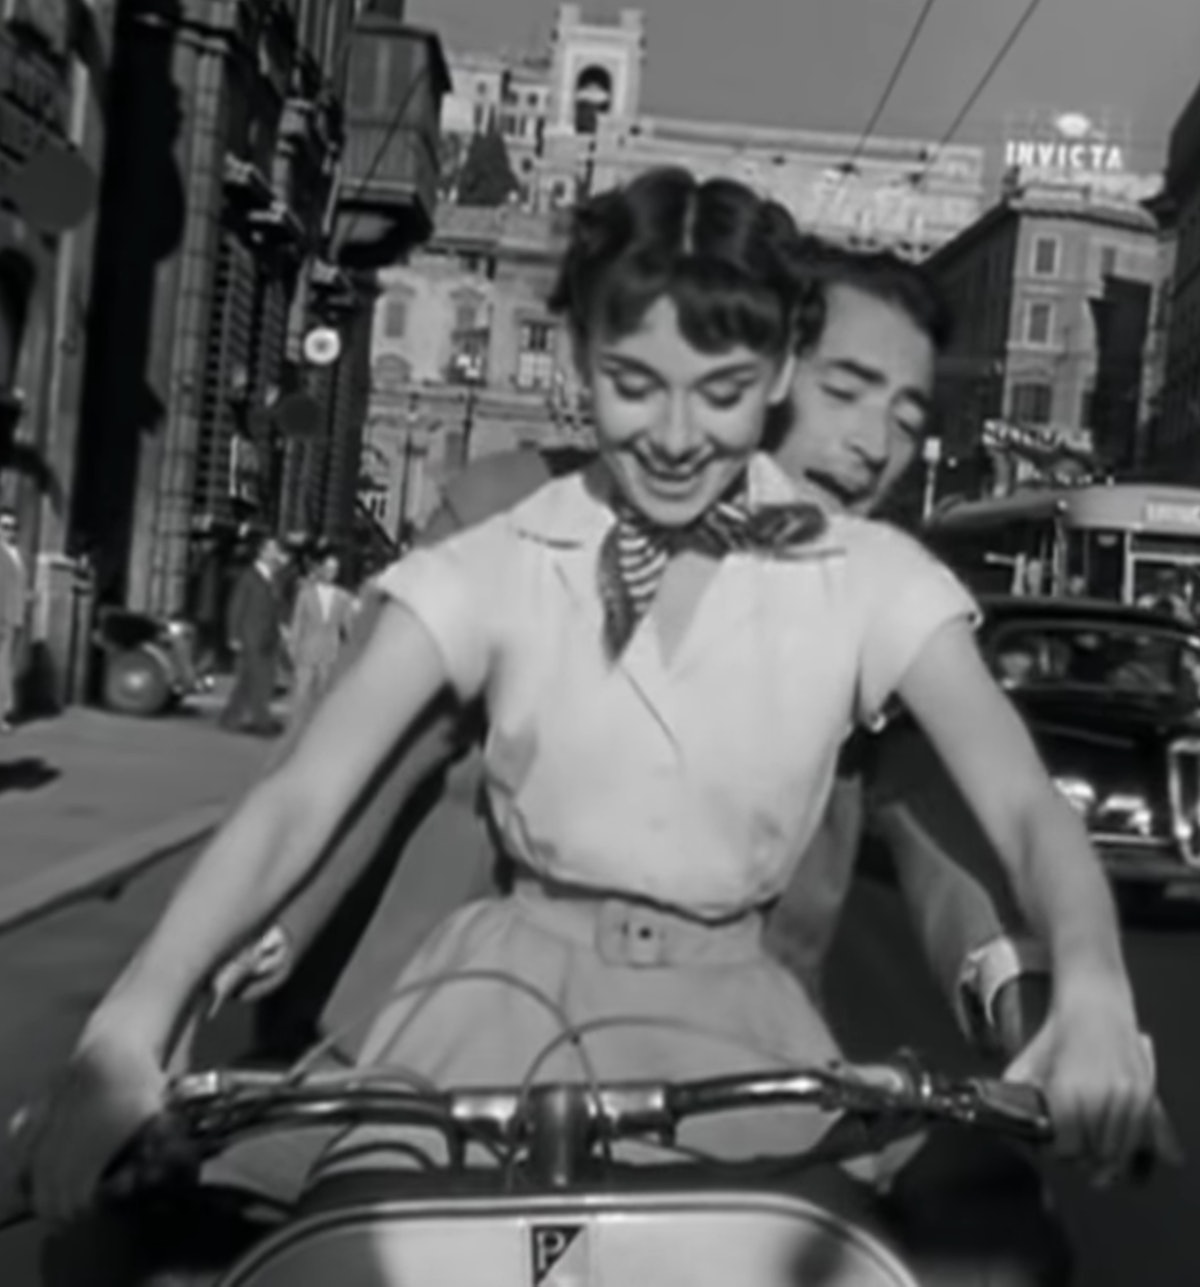 What's more adorable than riding on a Vespa with your partner?